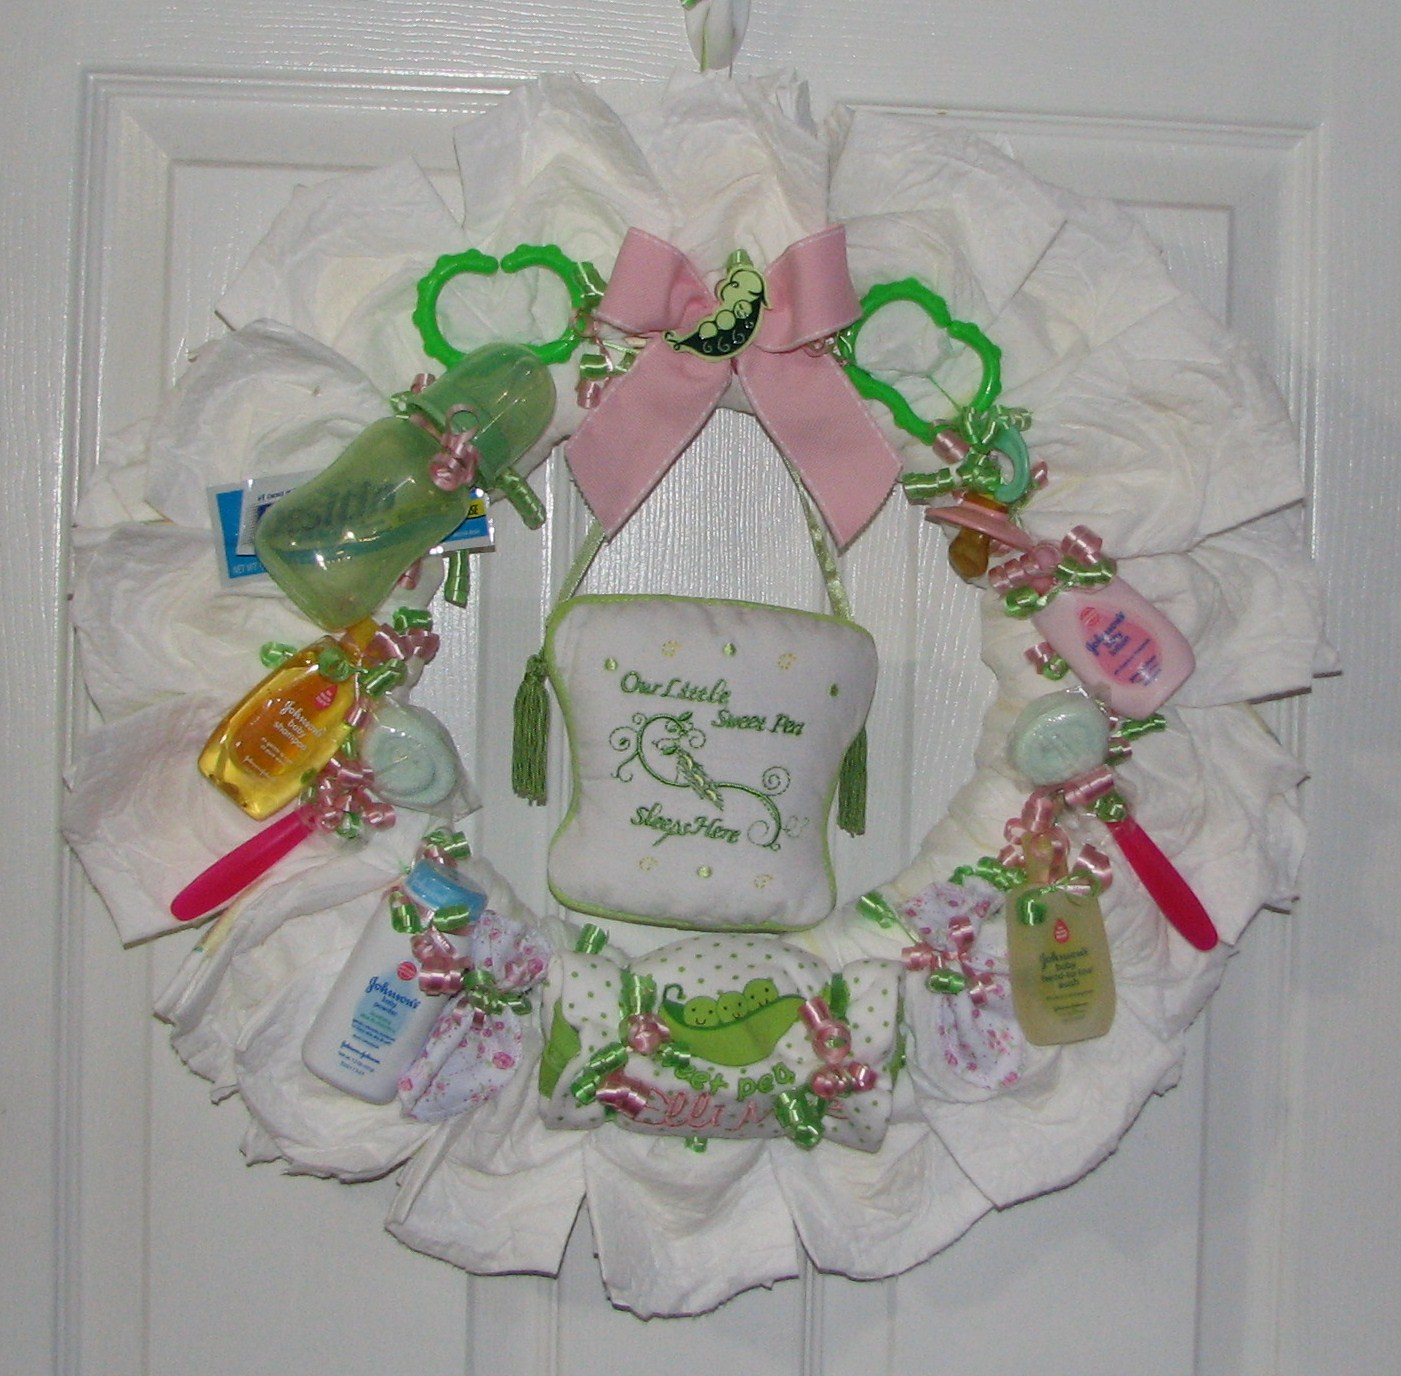 Sweet-Pea-Diaper-Wreath.JPG - Sweet Pea Diaper Wreath